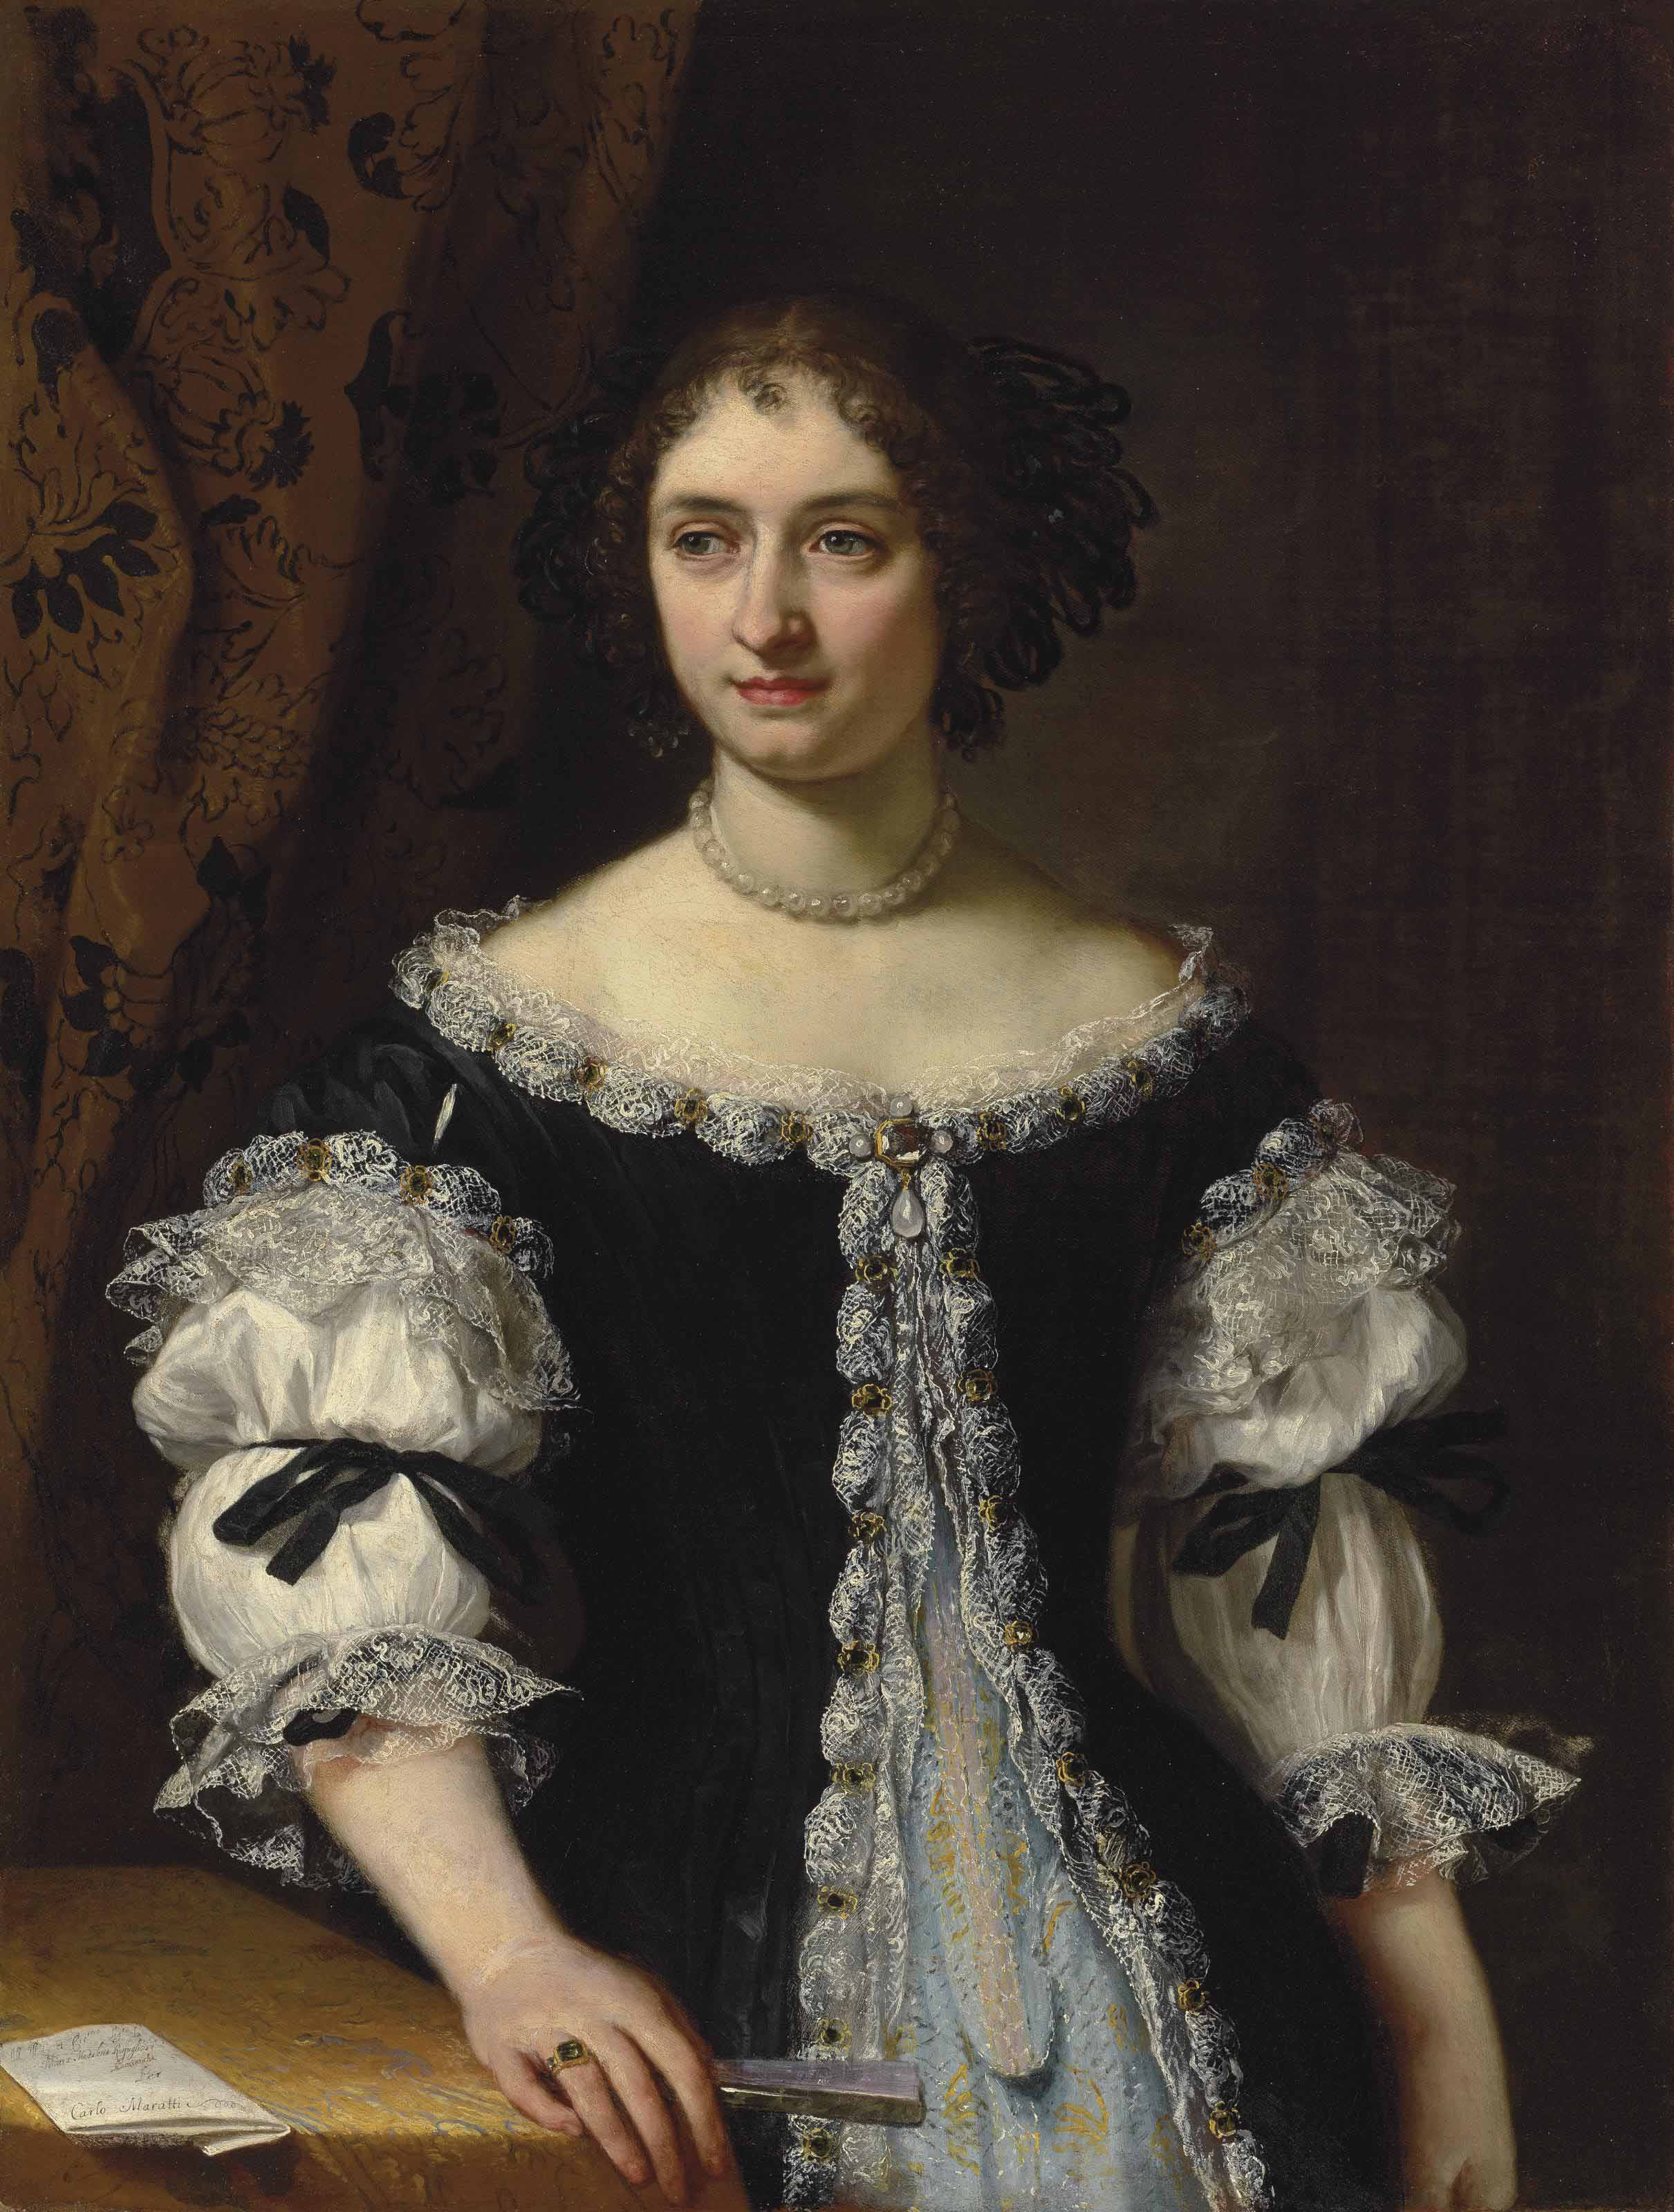 Portrait of Maria Maddalena Rospigliosi Panciatichi (1645-1695), half-length, in a black surcote trimmed with silver embroidery over a brocade gown, holding a fan, by a draped table with a letter